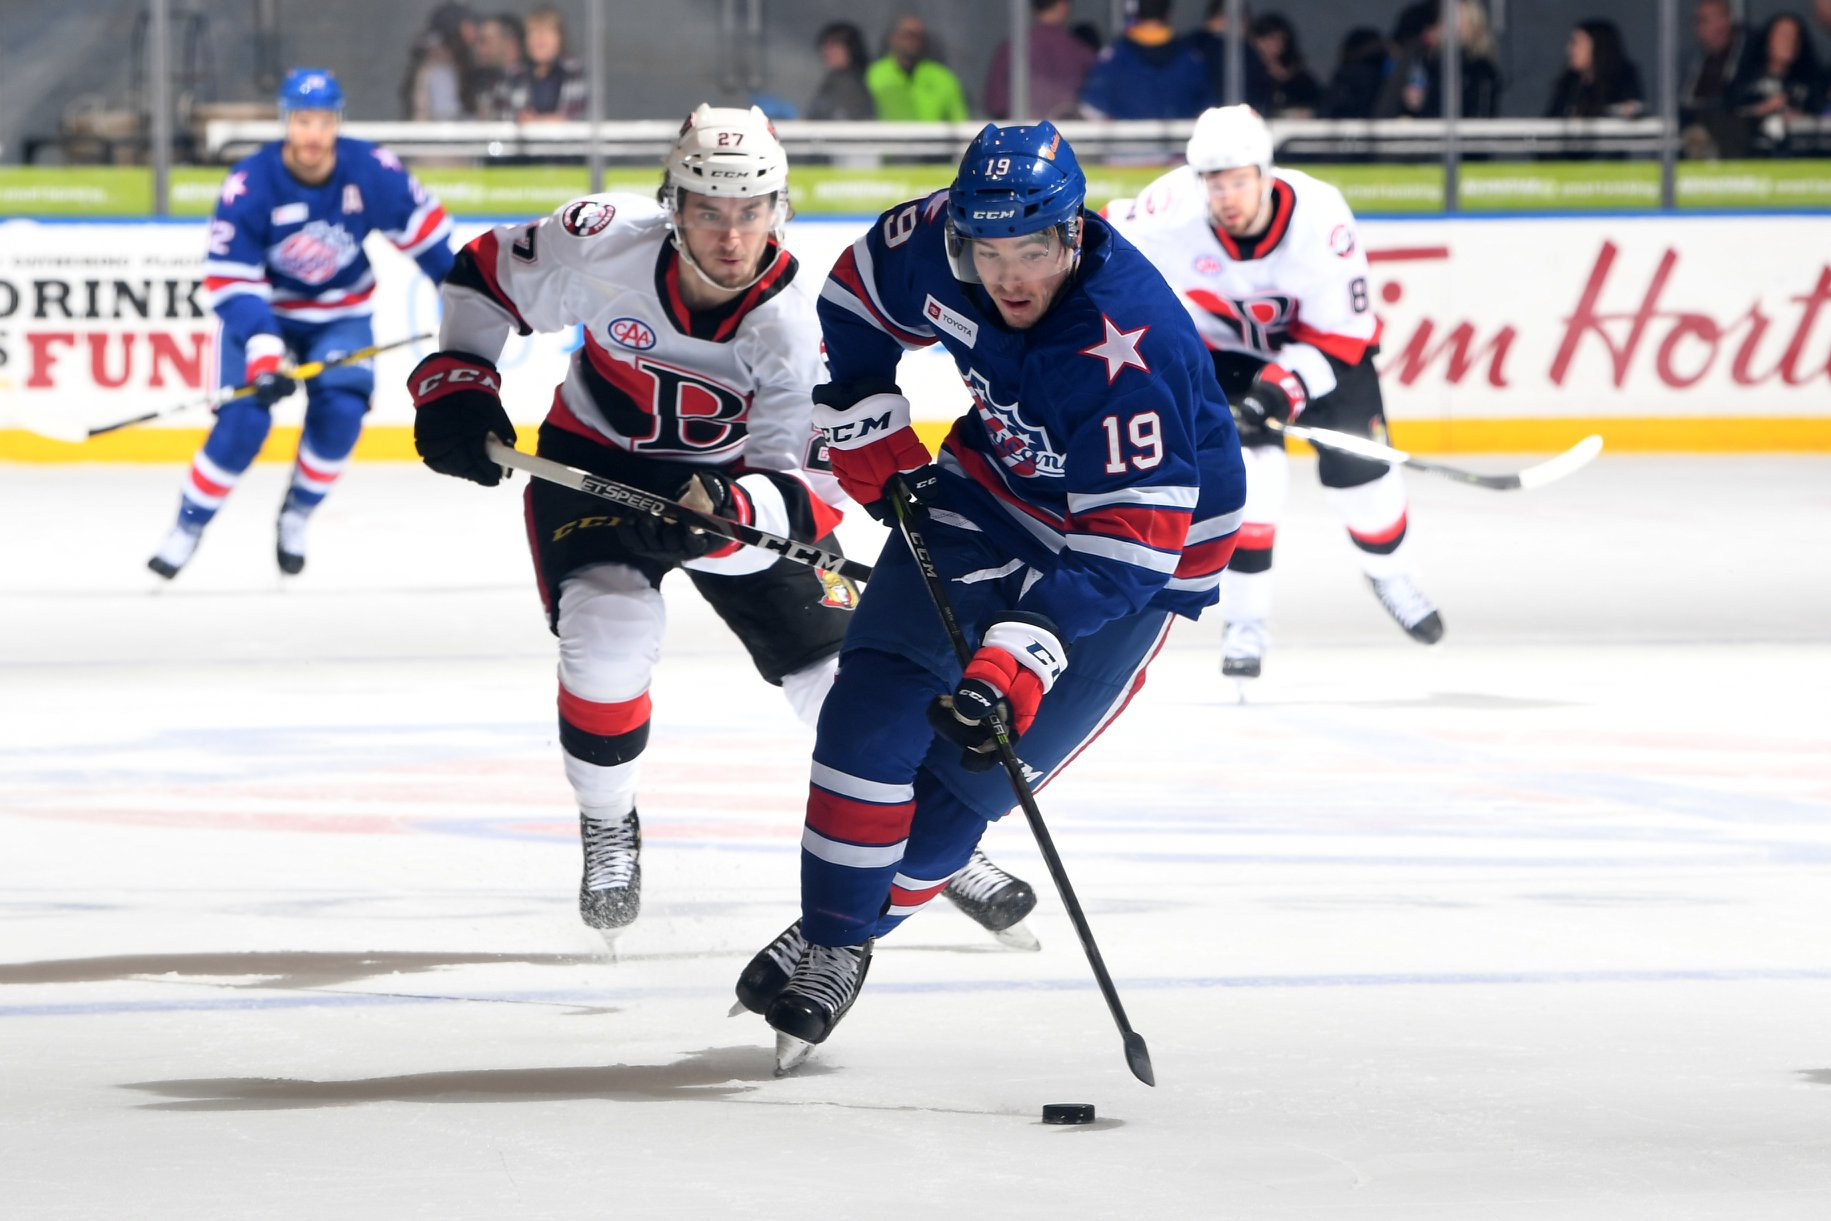 Recap: Amerks Panicked as Belleville Scored on Turnovers